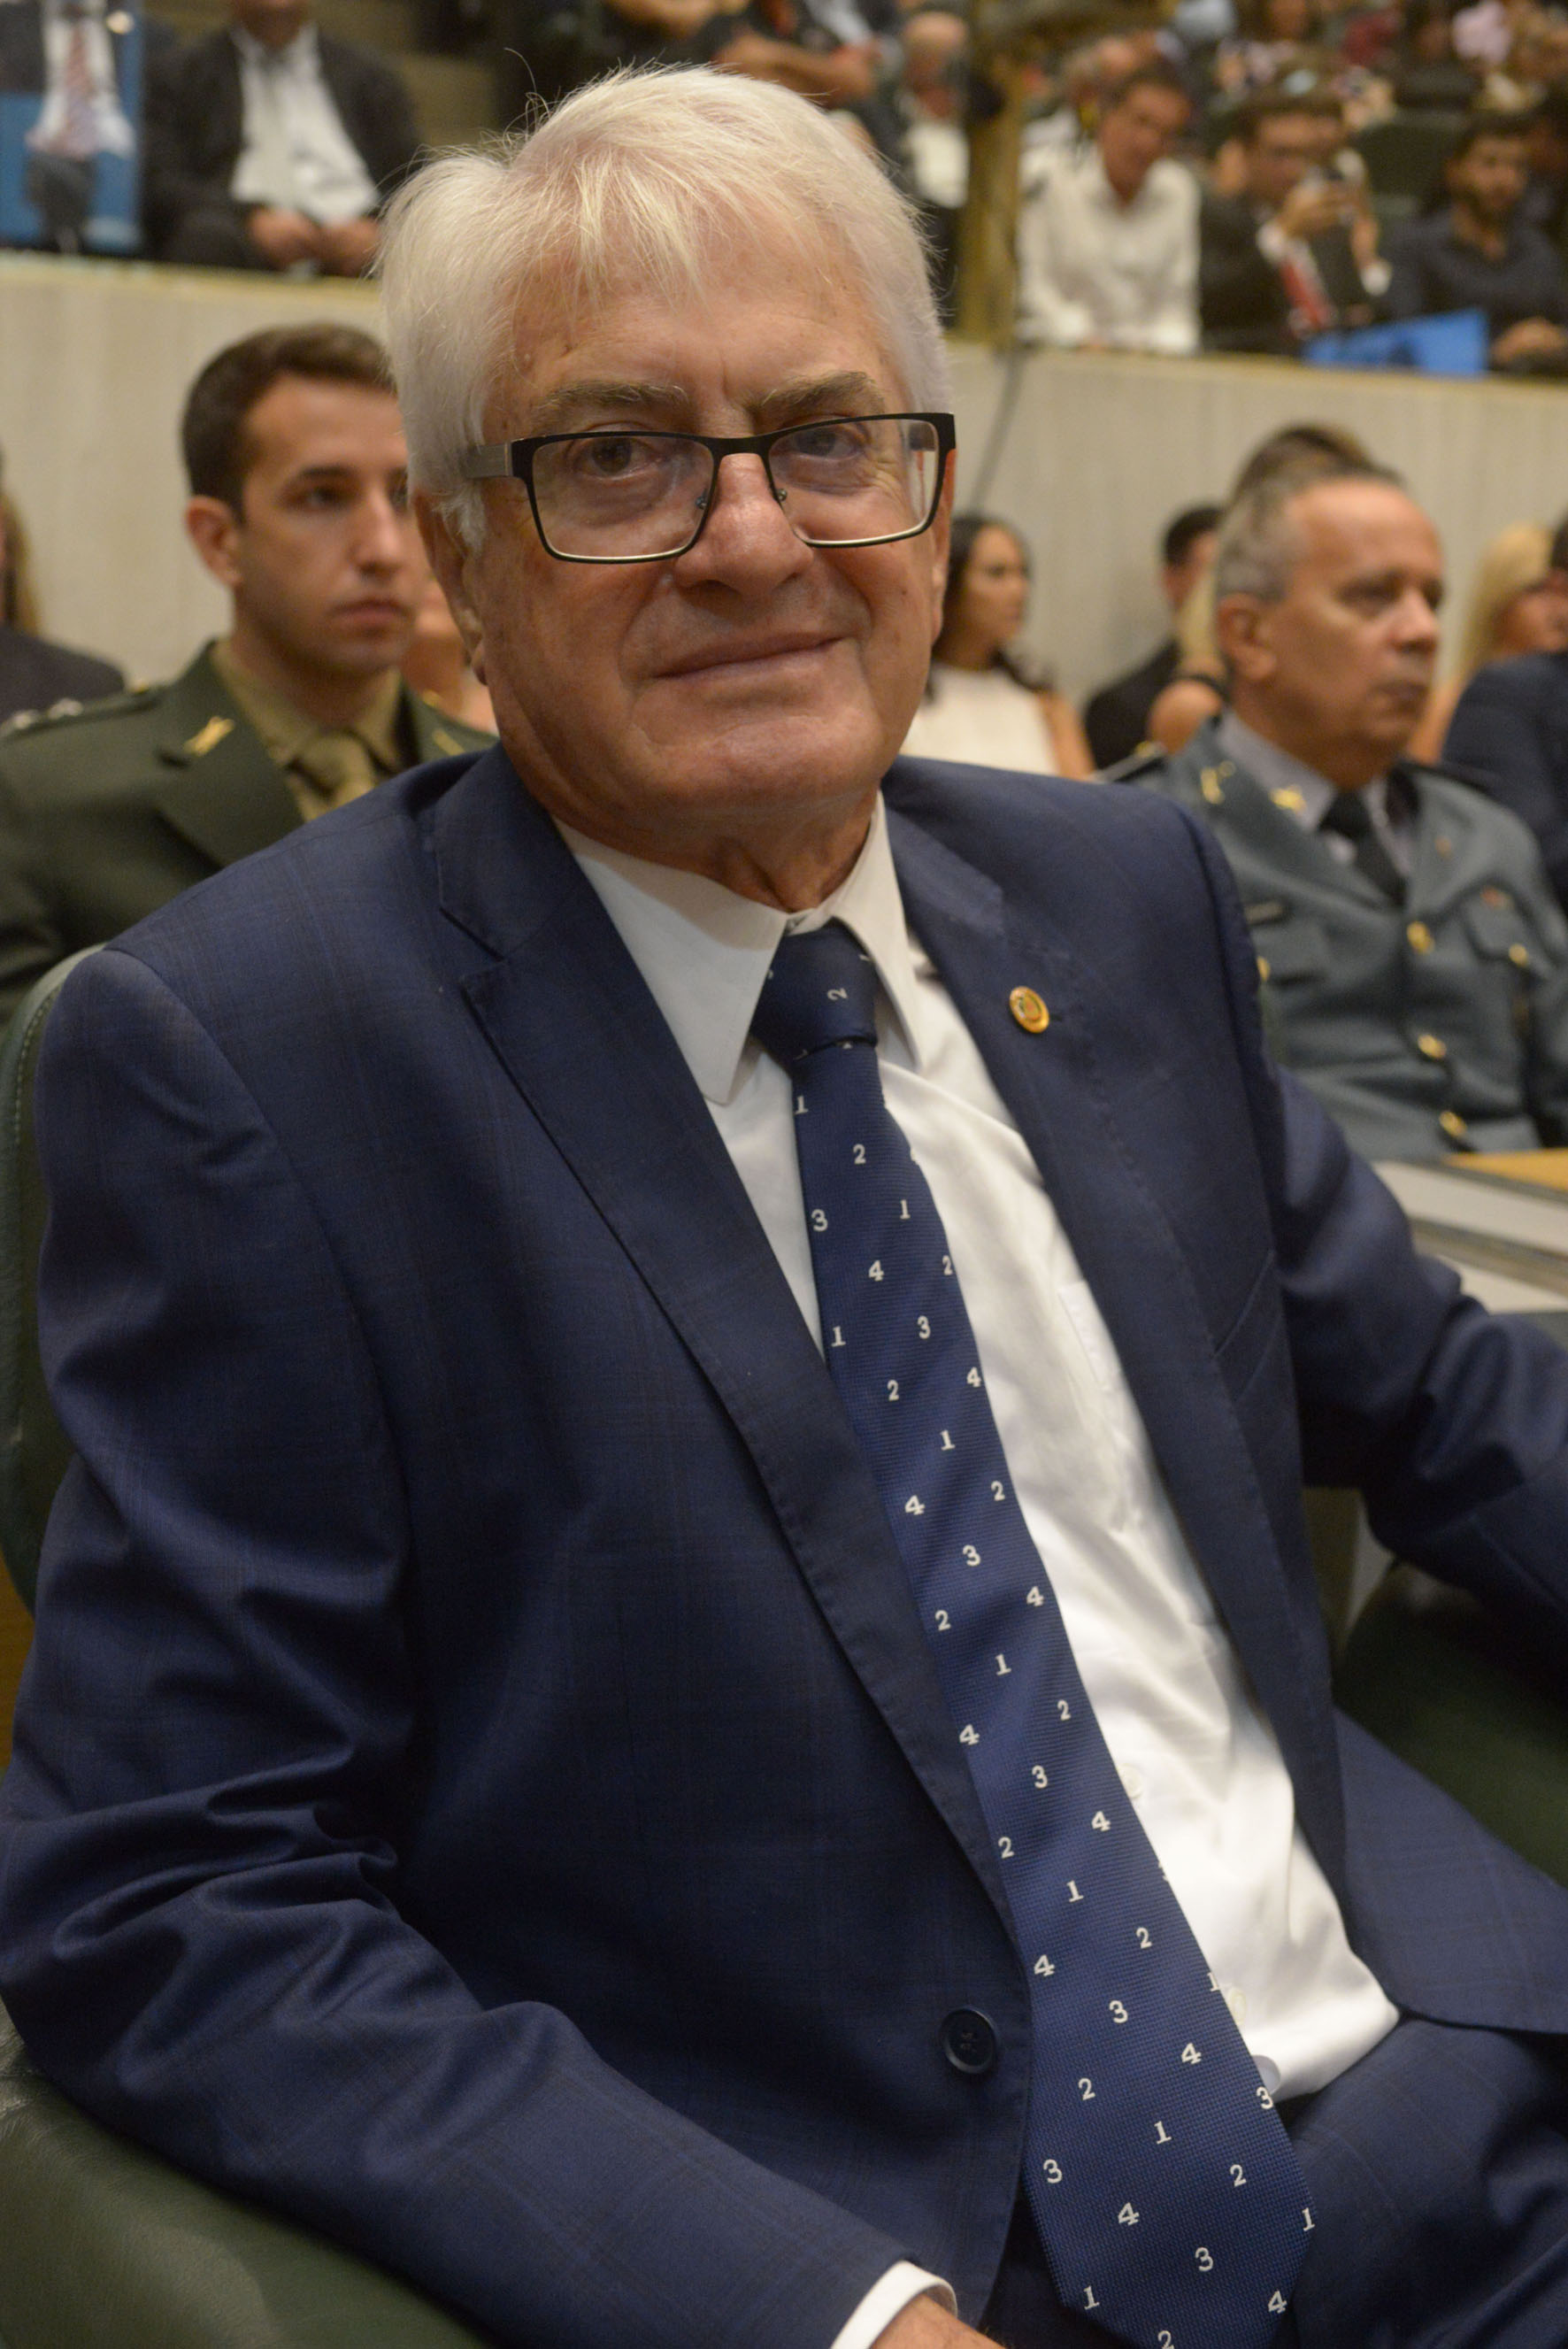 Roberto Engler<a style='float:right' href='https://www3.al.sp.gov.br/repositorio/noticia/N-03-2019/fg231593.jpg' target=_blank><img src='/_img/material-file-download-white.png' width='14px' alt='Clique para baixar a imagem'></a>